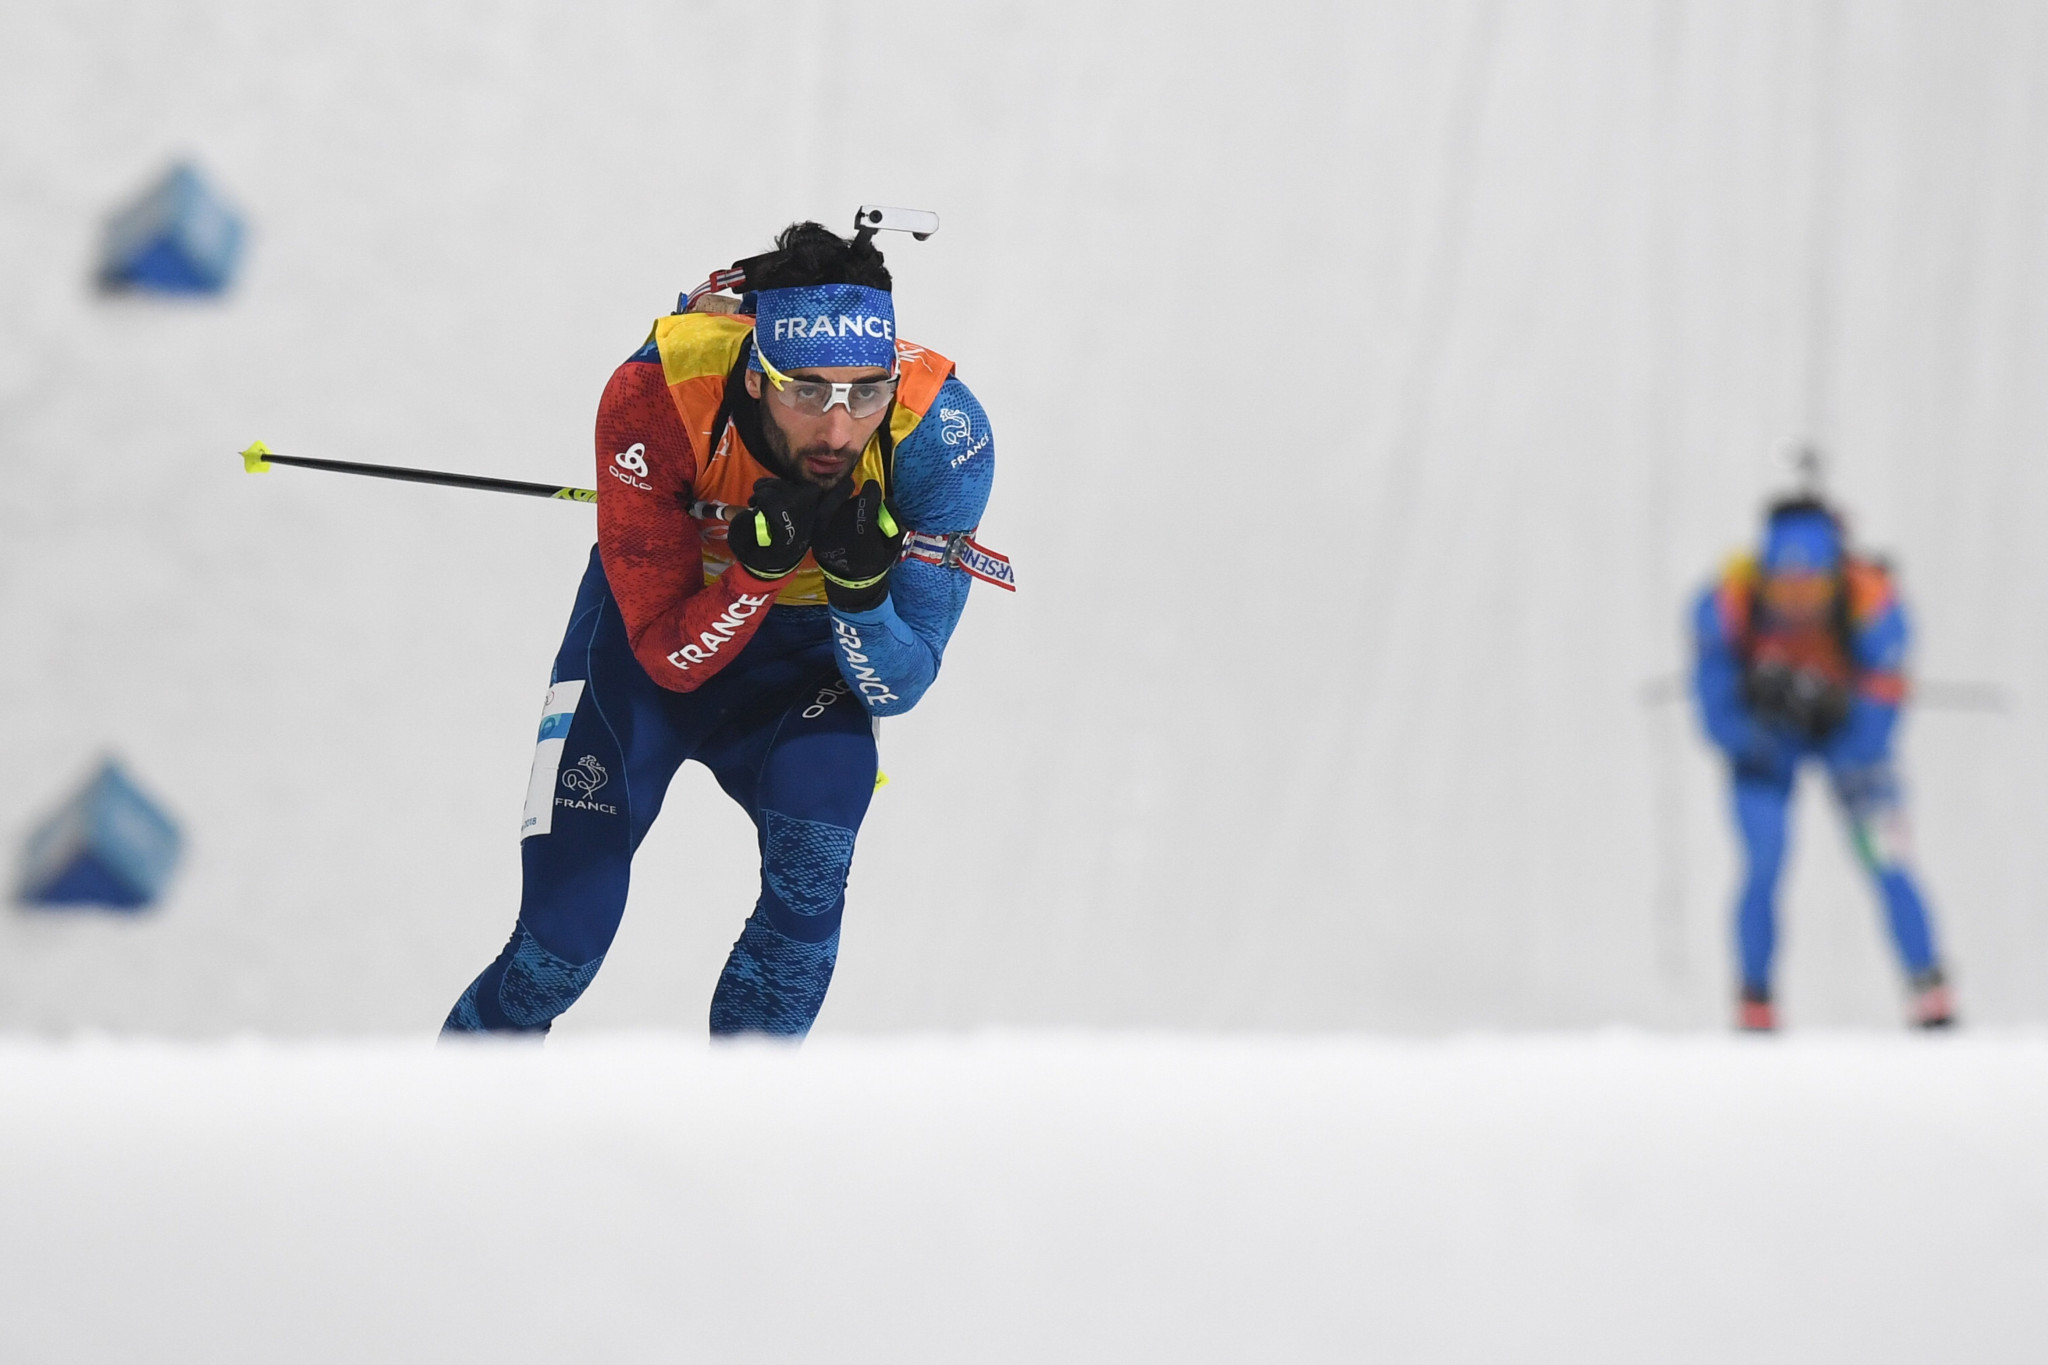 Biathlon legend Fourcade named President of Paris 2024 Athletes' Commission